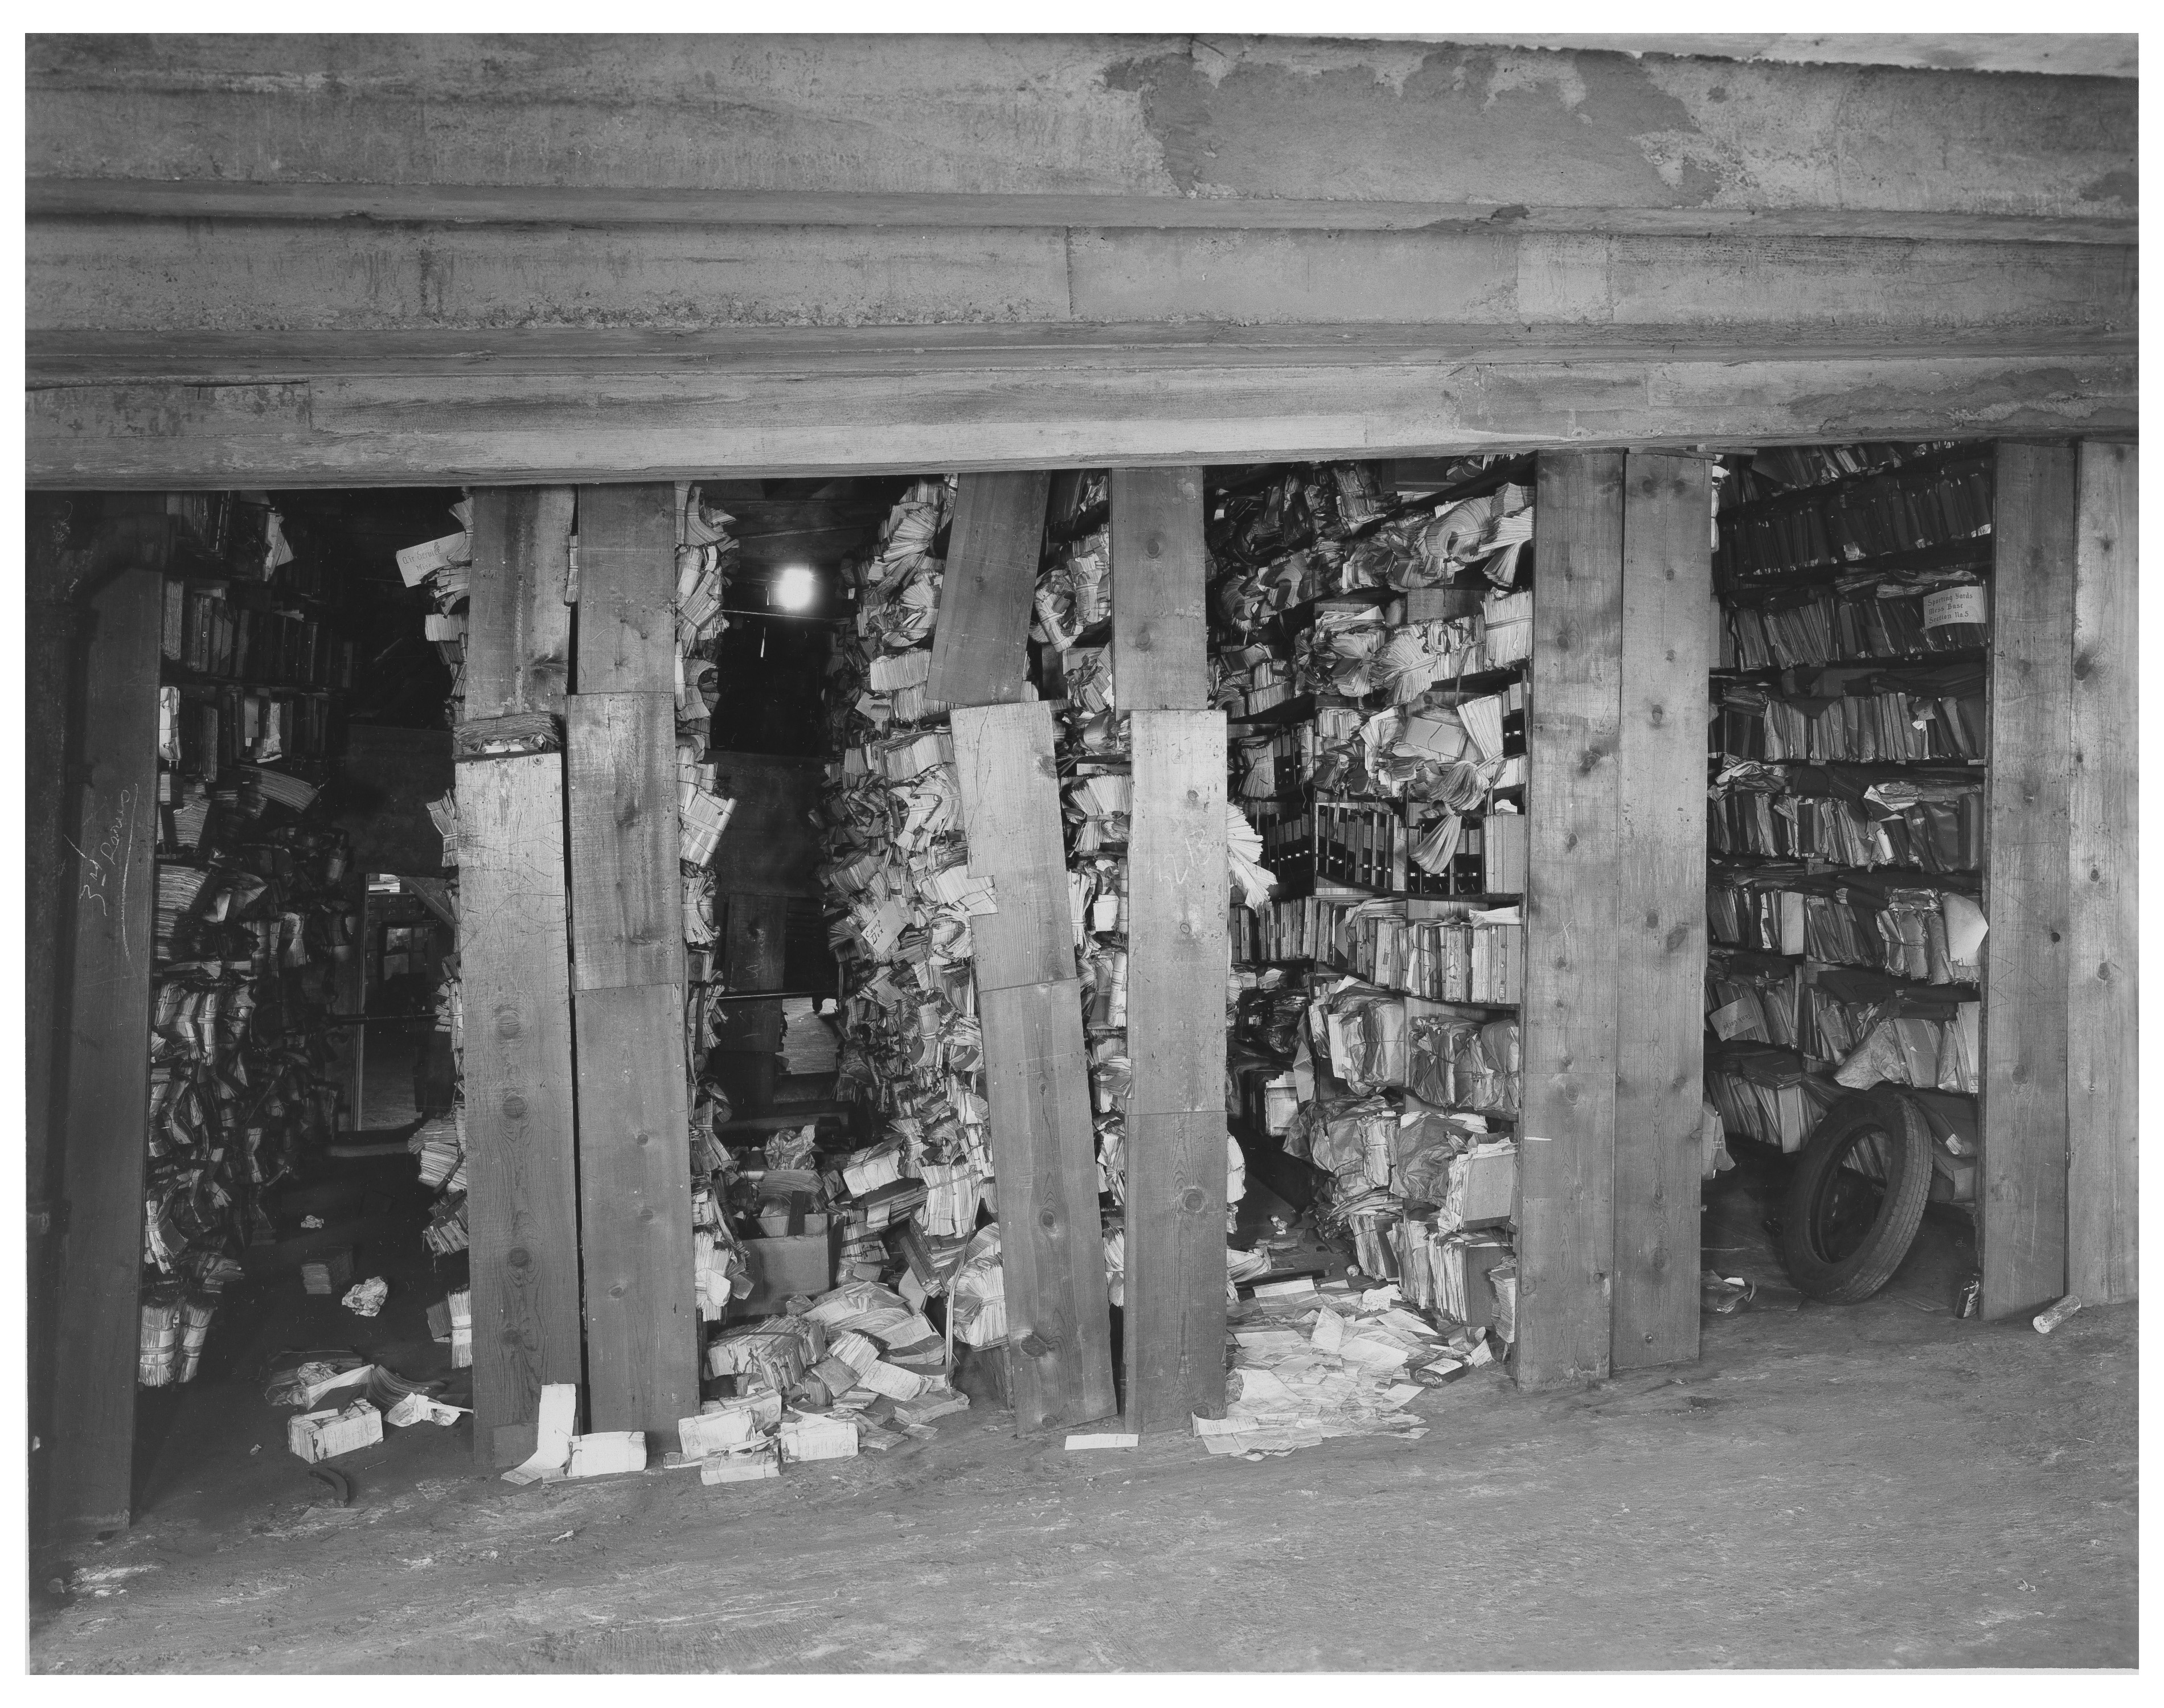 Photograph of poor record storage conditions in the White House Garage, 1935. (Records of the National Archives)